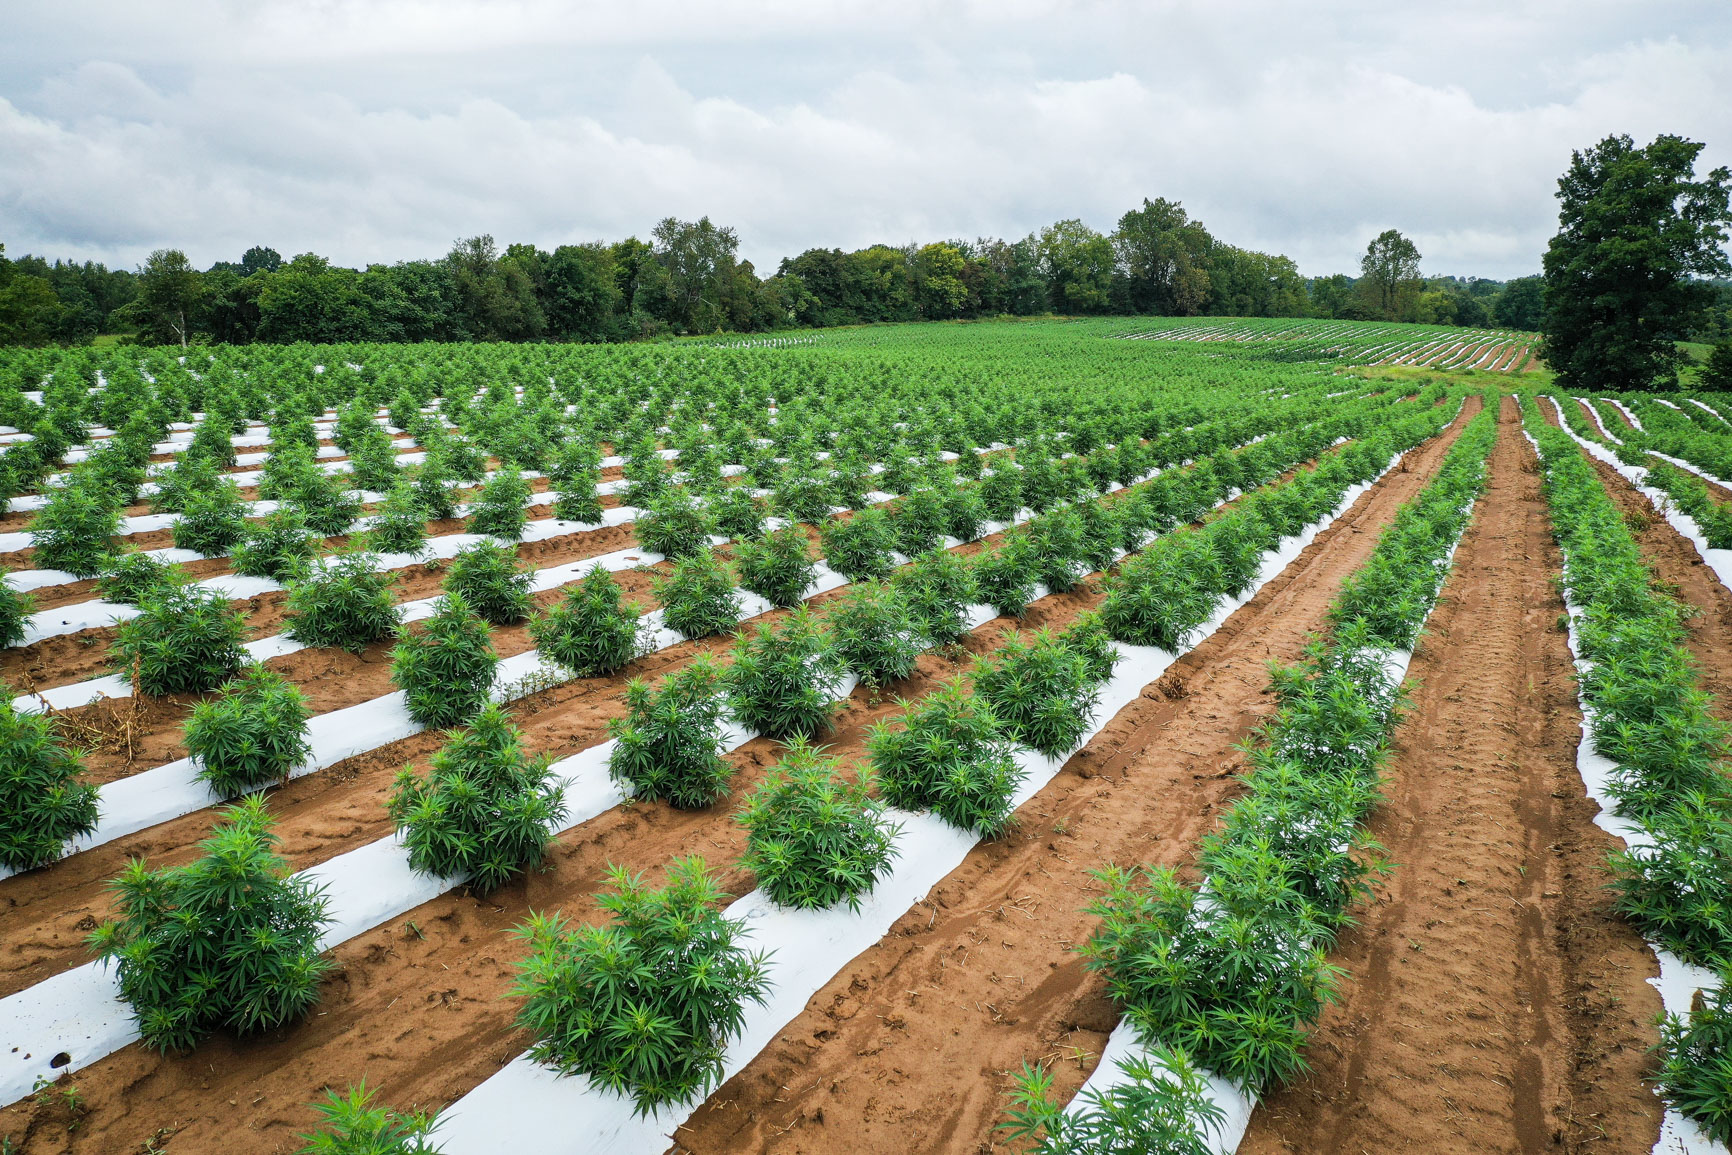 Rows of Hemp plants in field